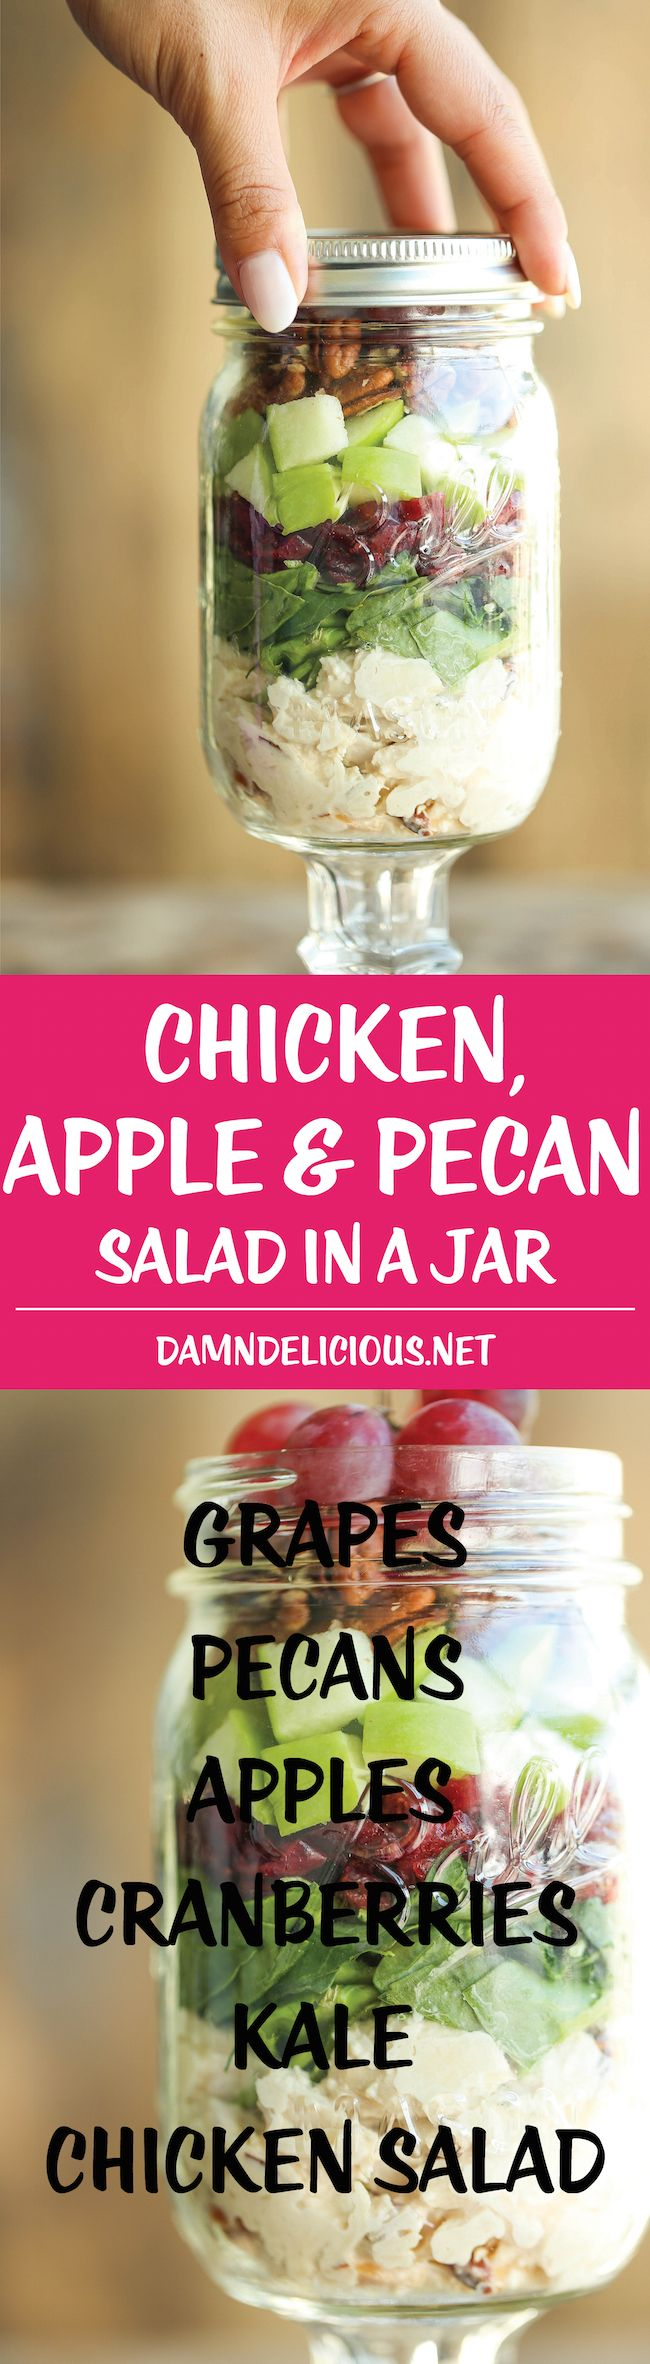 Chicken, Apple and Pecan Salad in a Jar Easy, portable salads that can be made ahead for the week - they stay fresh so you never have a soggy salad again!